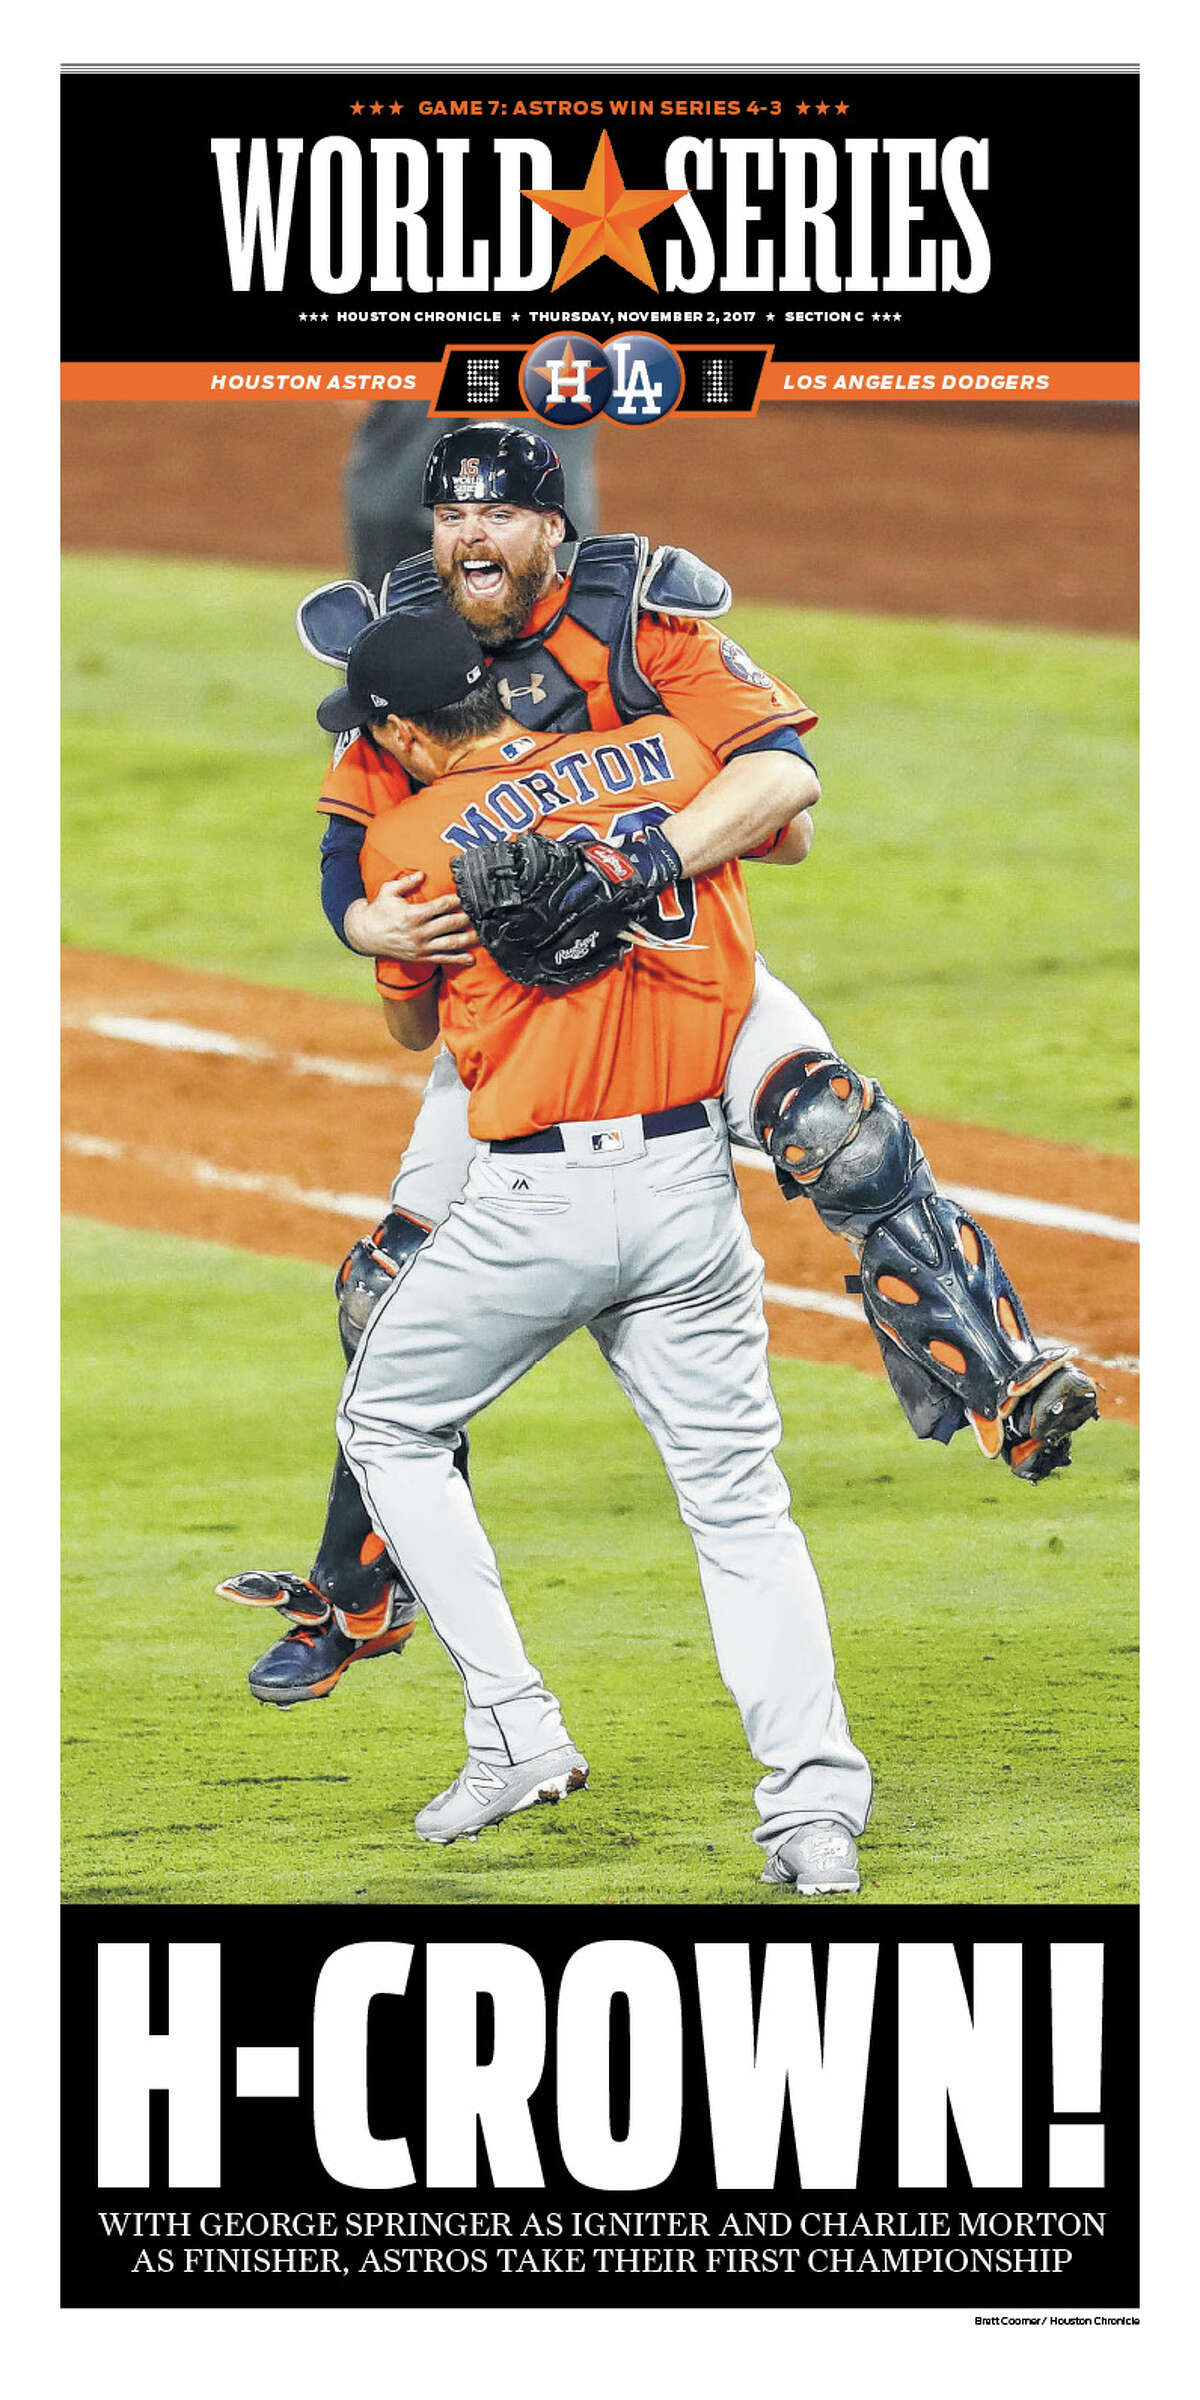 Here's how the Houston Chronicle covered the Houston Astros' World Series win.